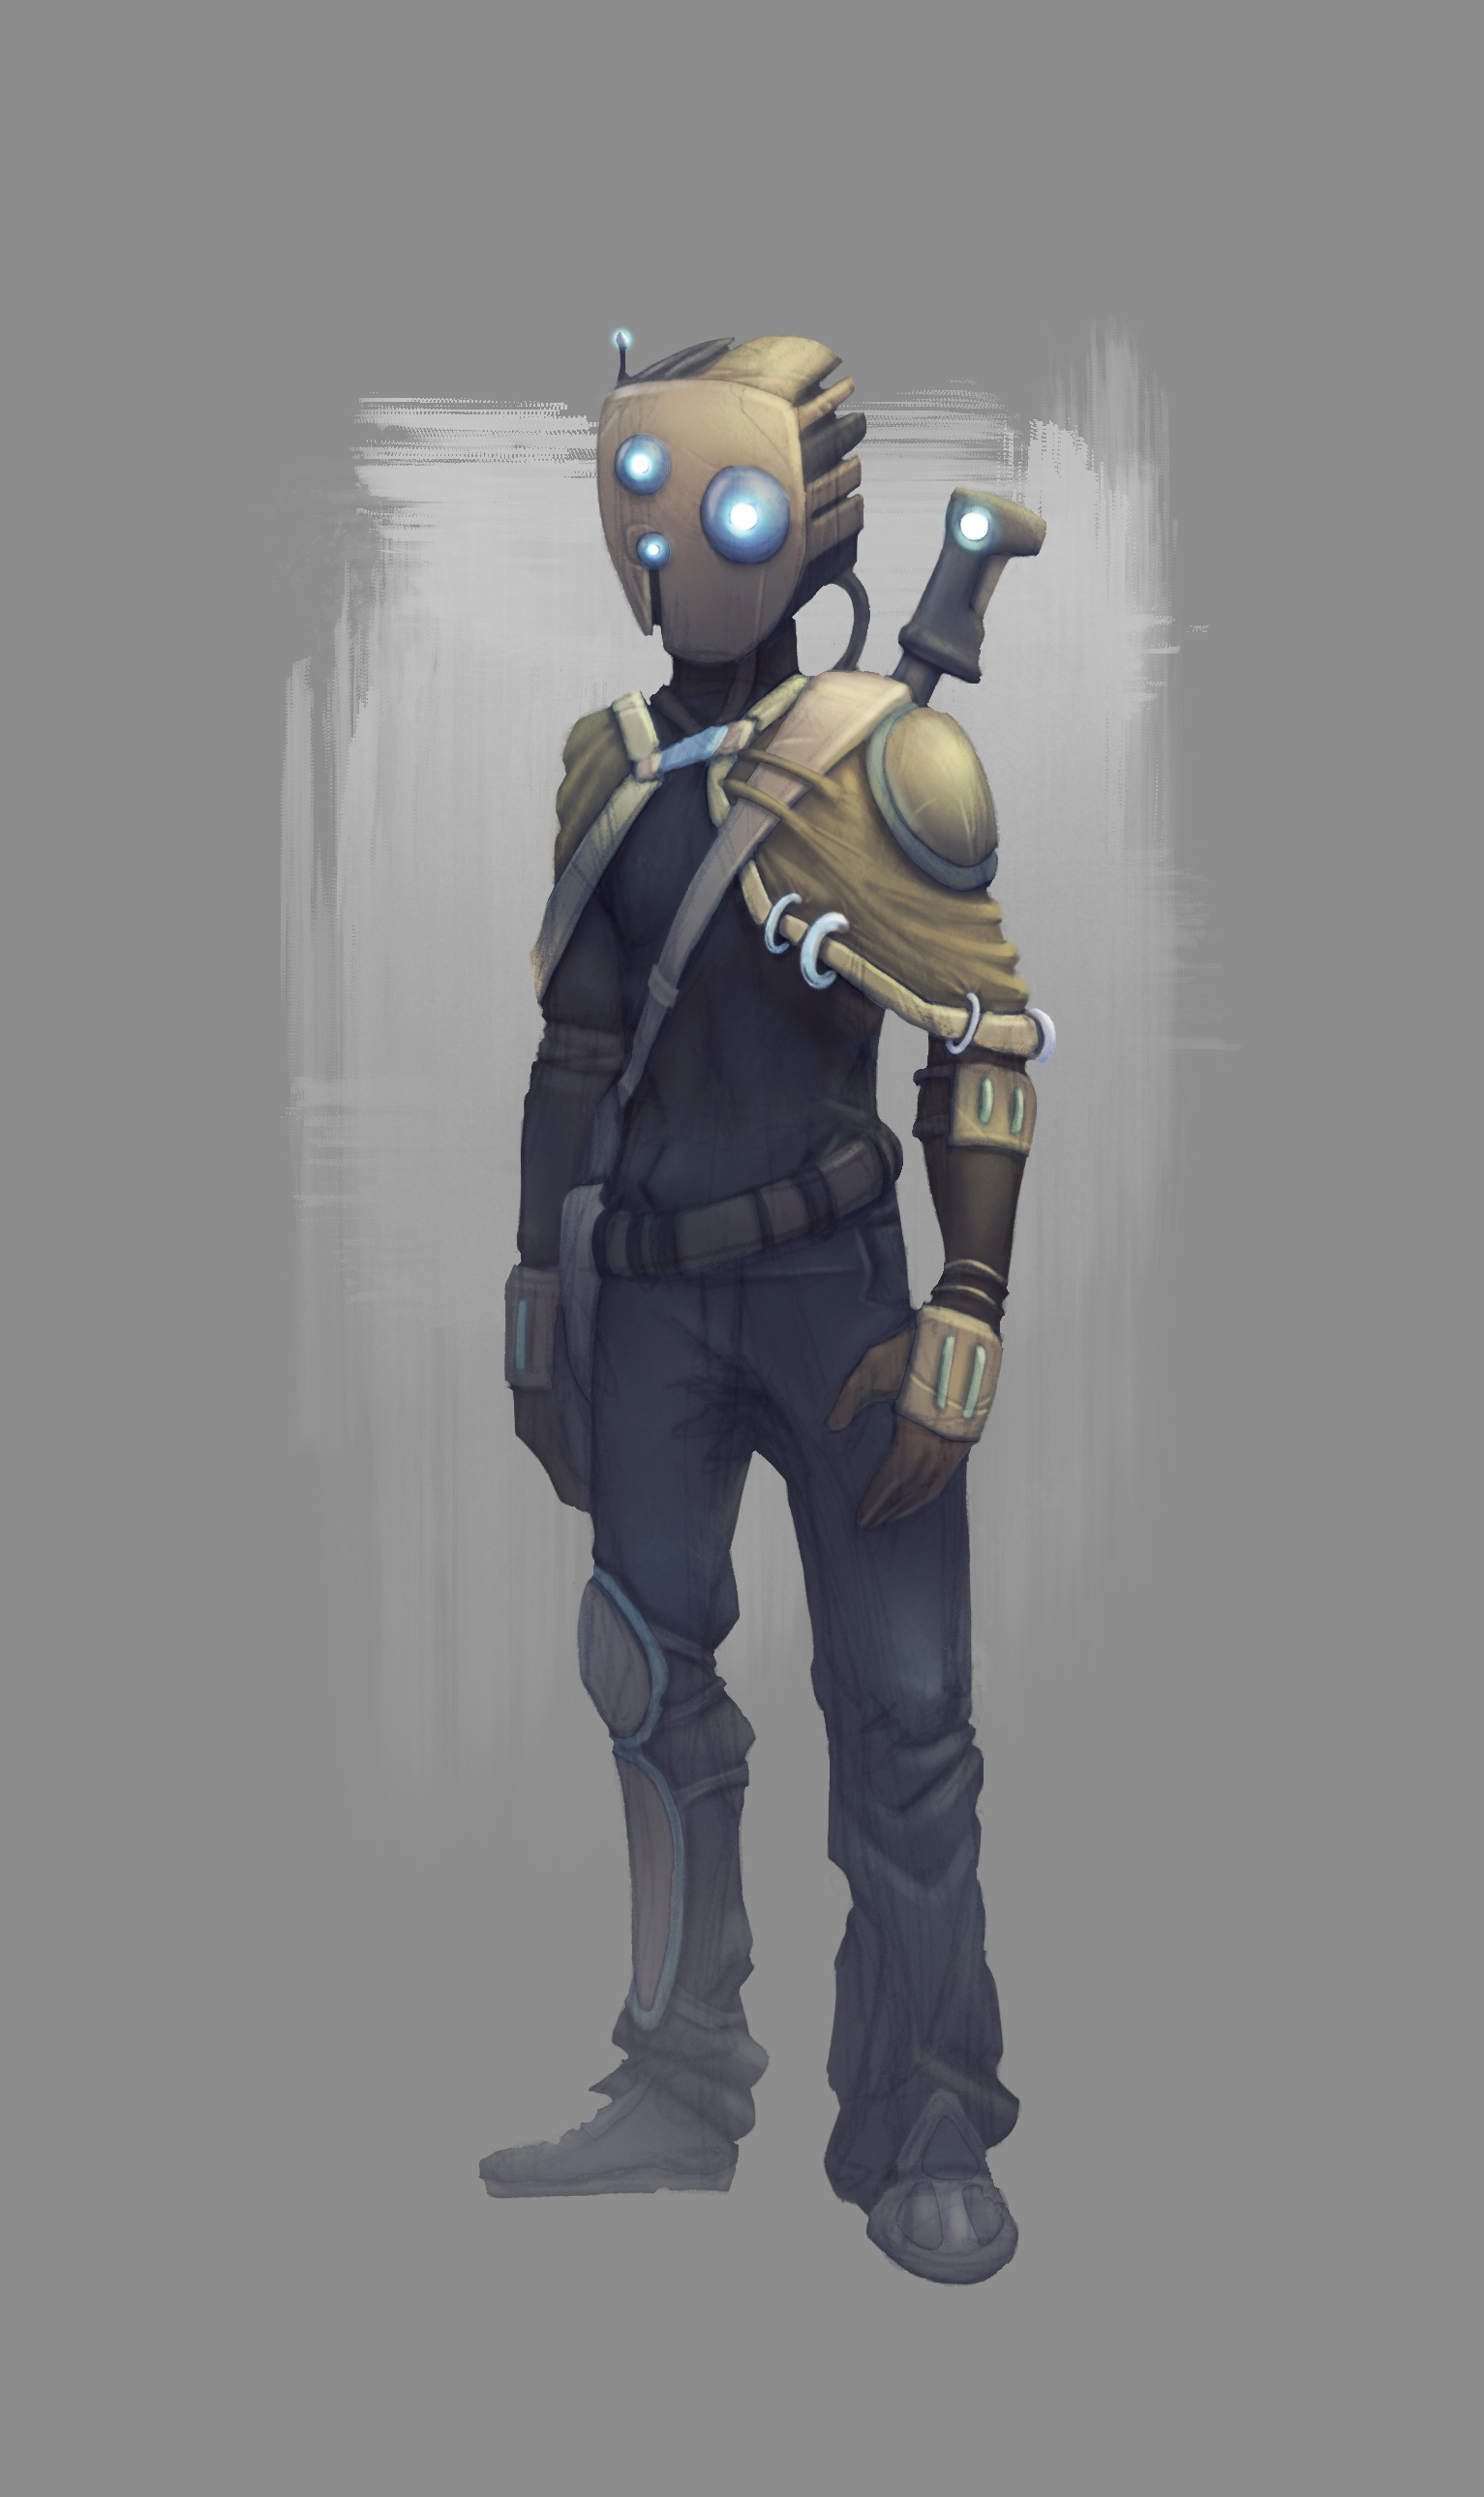 Character design du futur robotique sci-fi (photoshop)